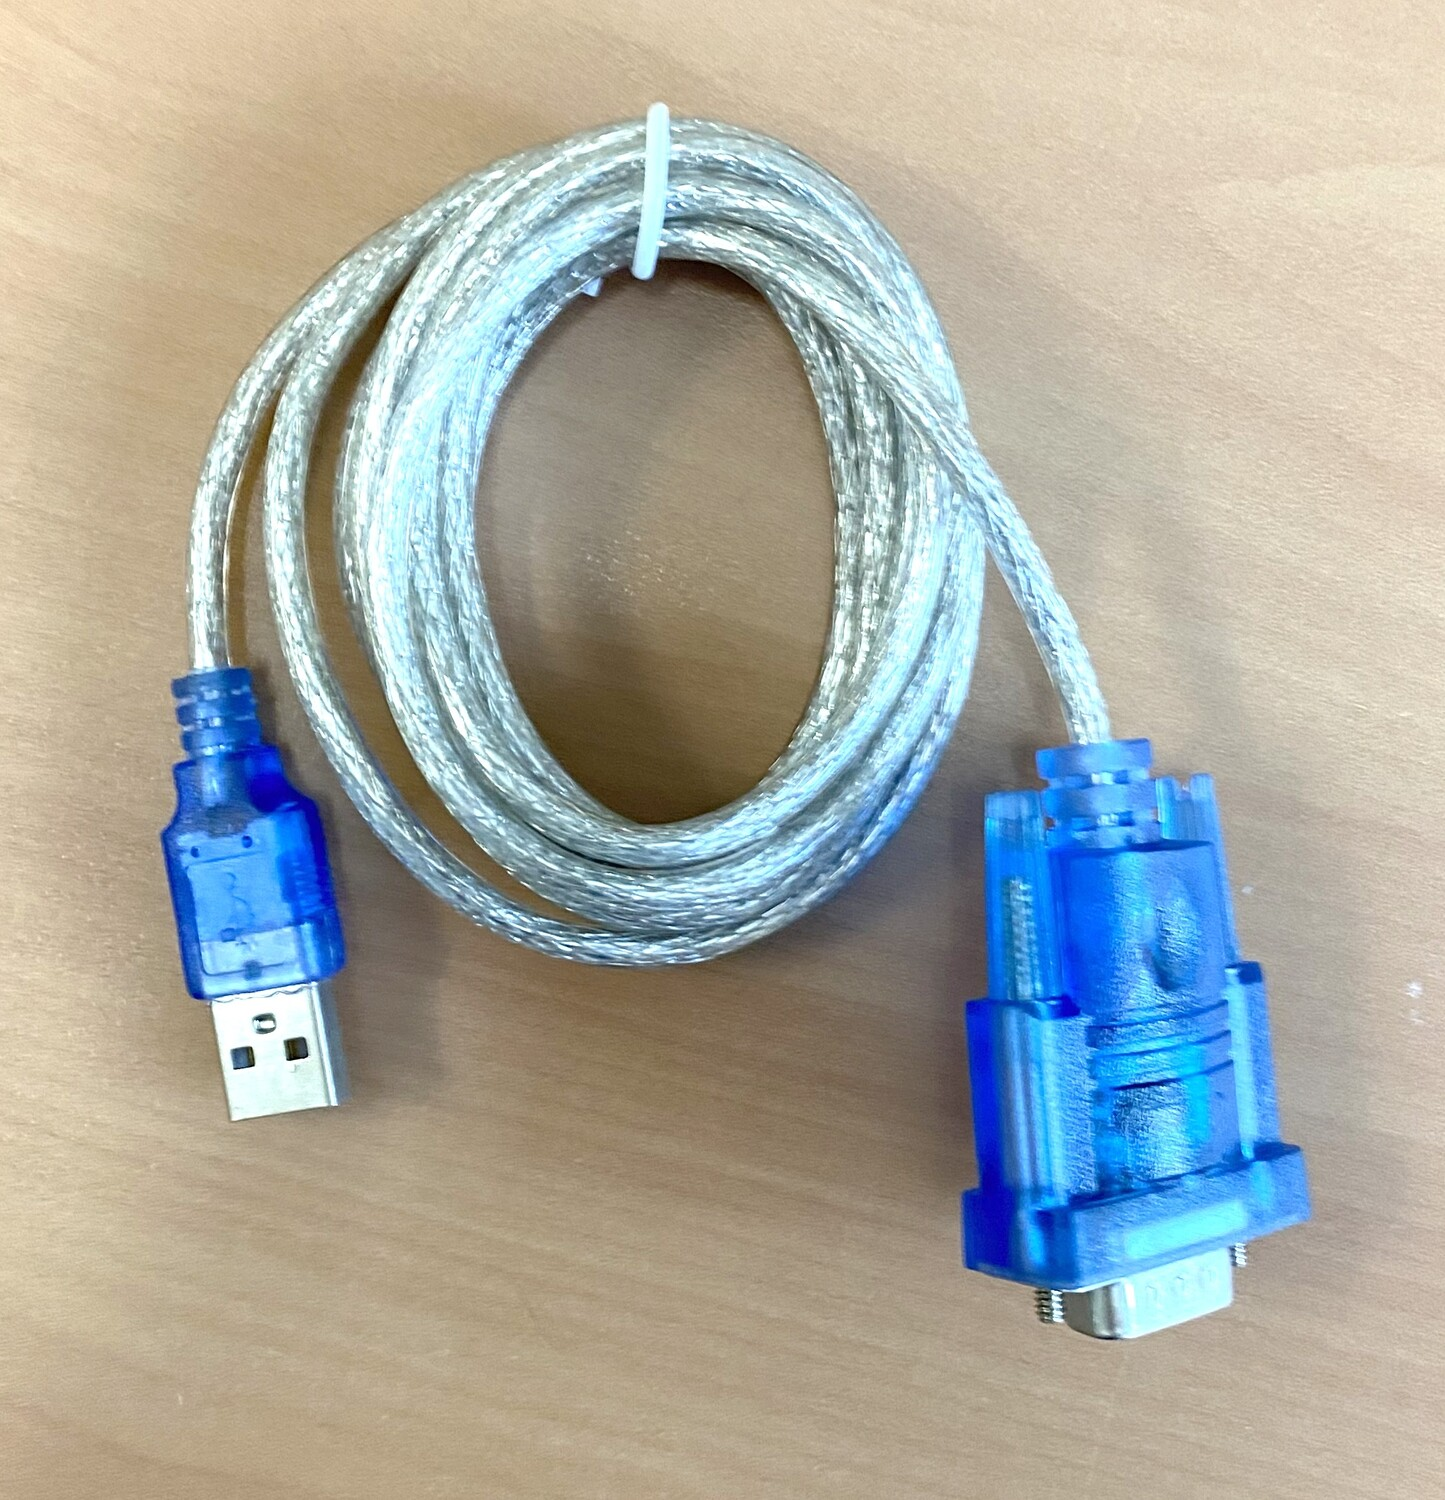 6 foot USB to Serial Cable for Power Pro